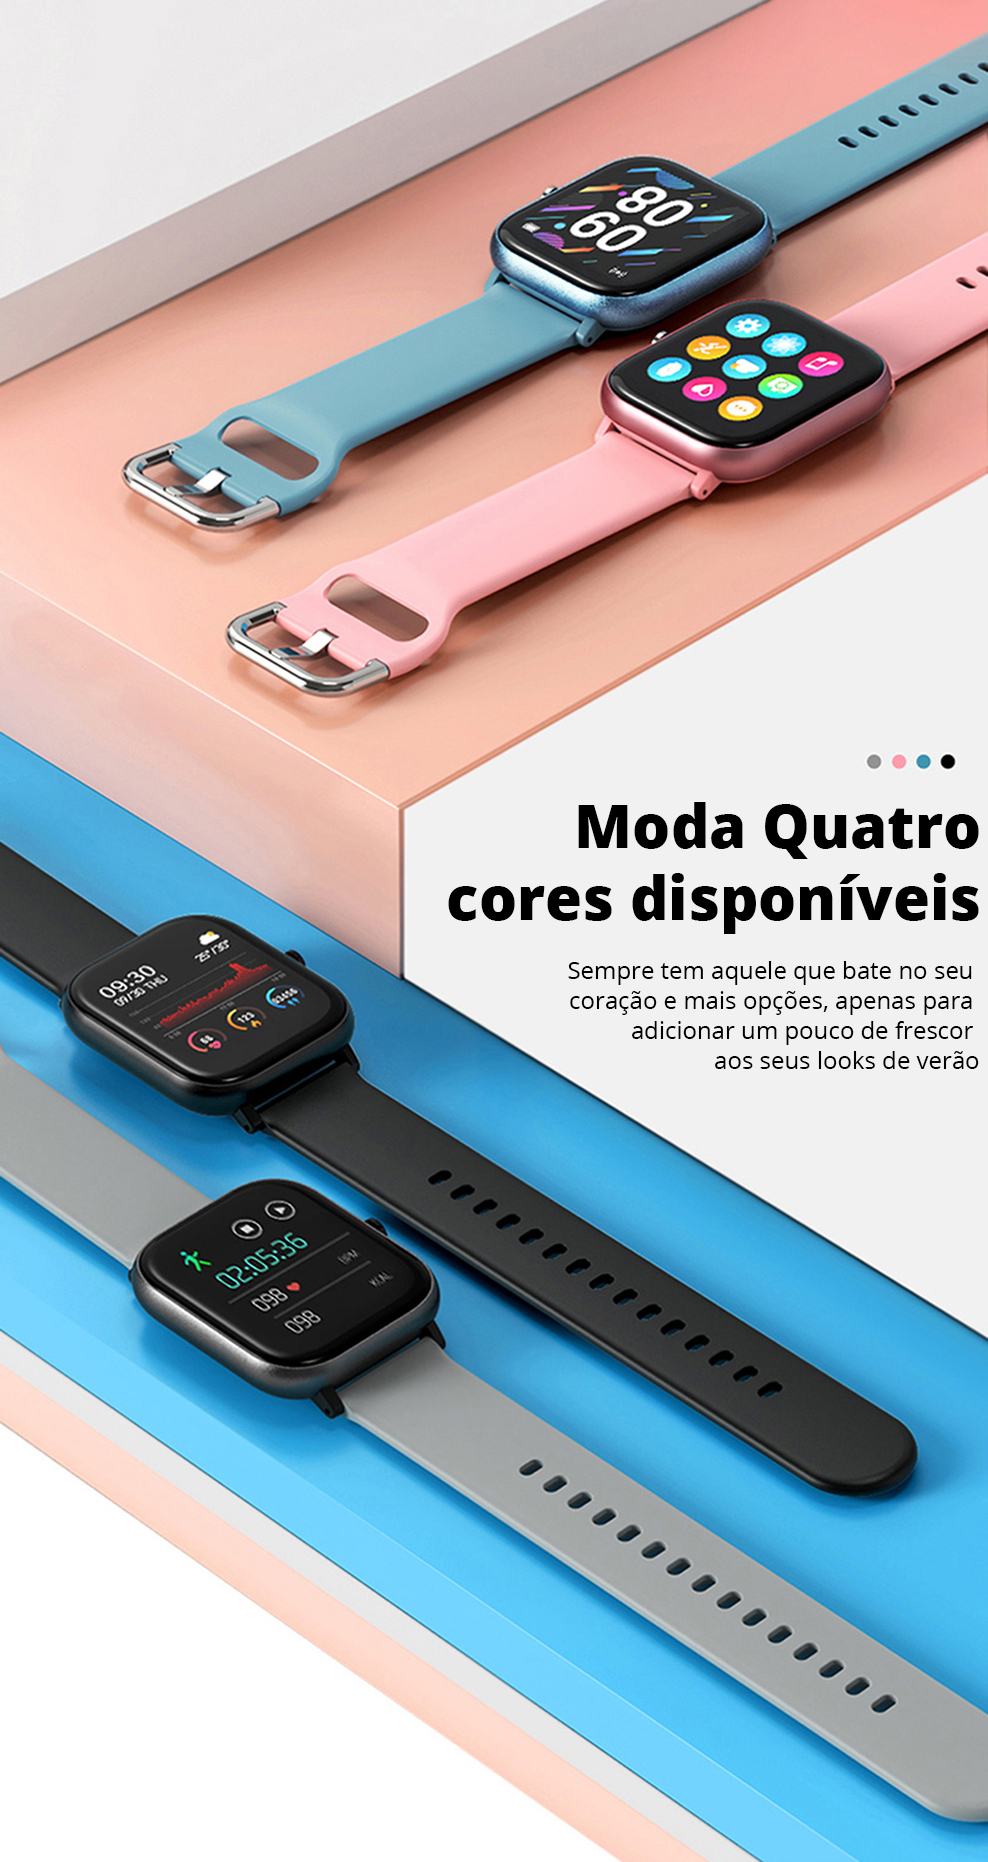 H5993899c83d64ca08e15716c7690a7297 SQR P8 SE Smart Watch Men Women 1.4 Inch Fitness Tracker Full Touch Screen Ip67 Waterproof Heart Rate Monitor for iOS Android